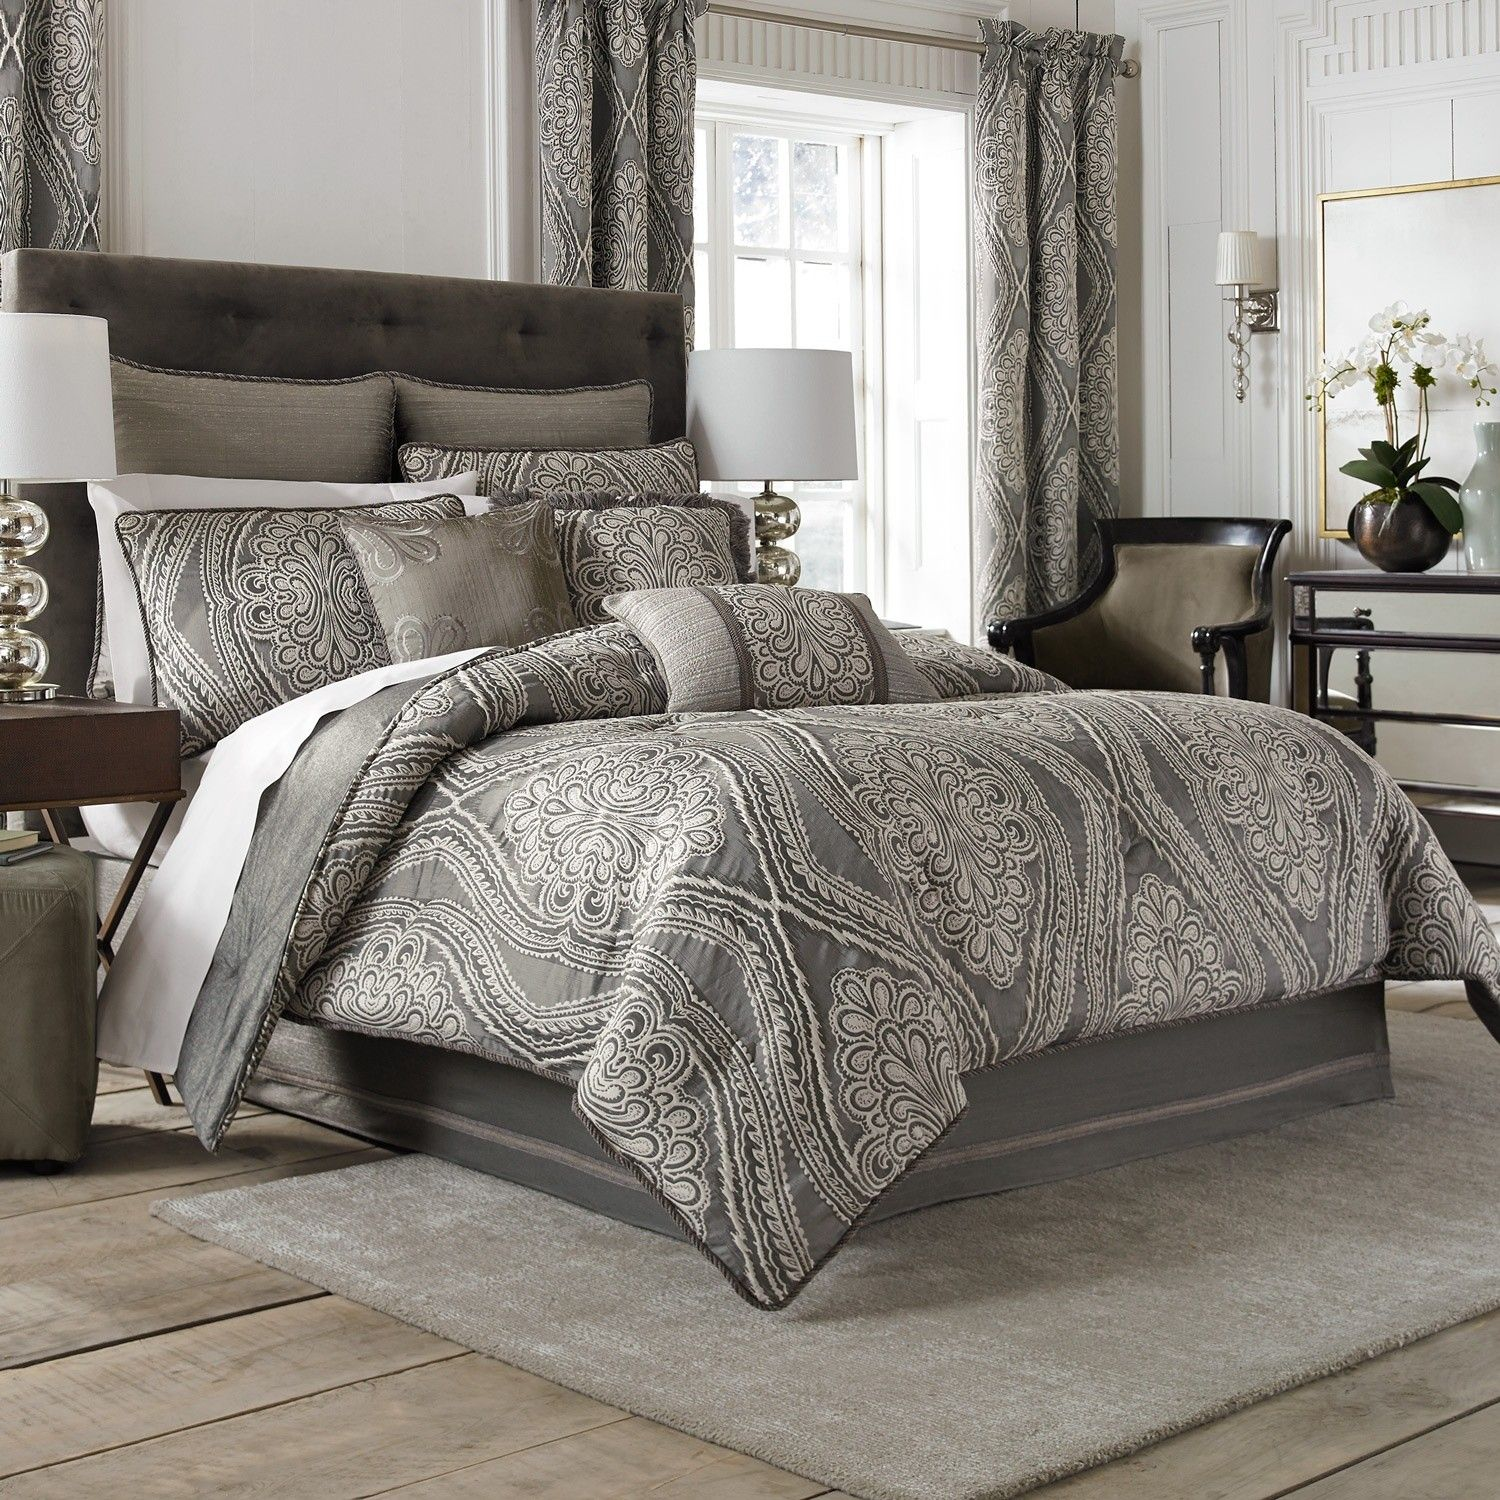 matching rug and curtains - google search | bedspreads | pinterest